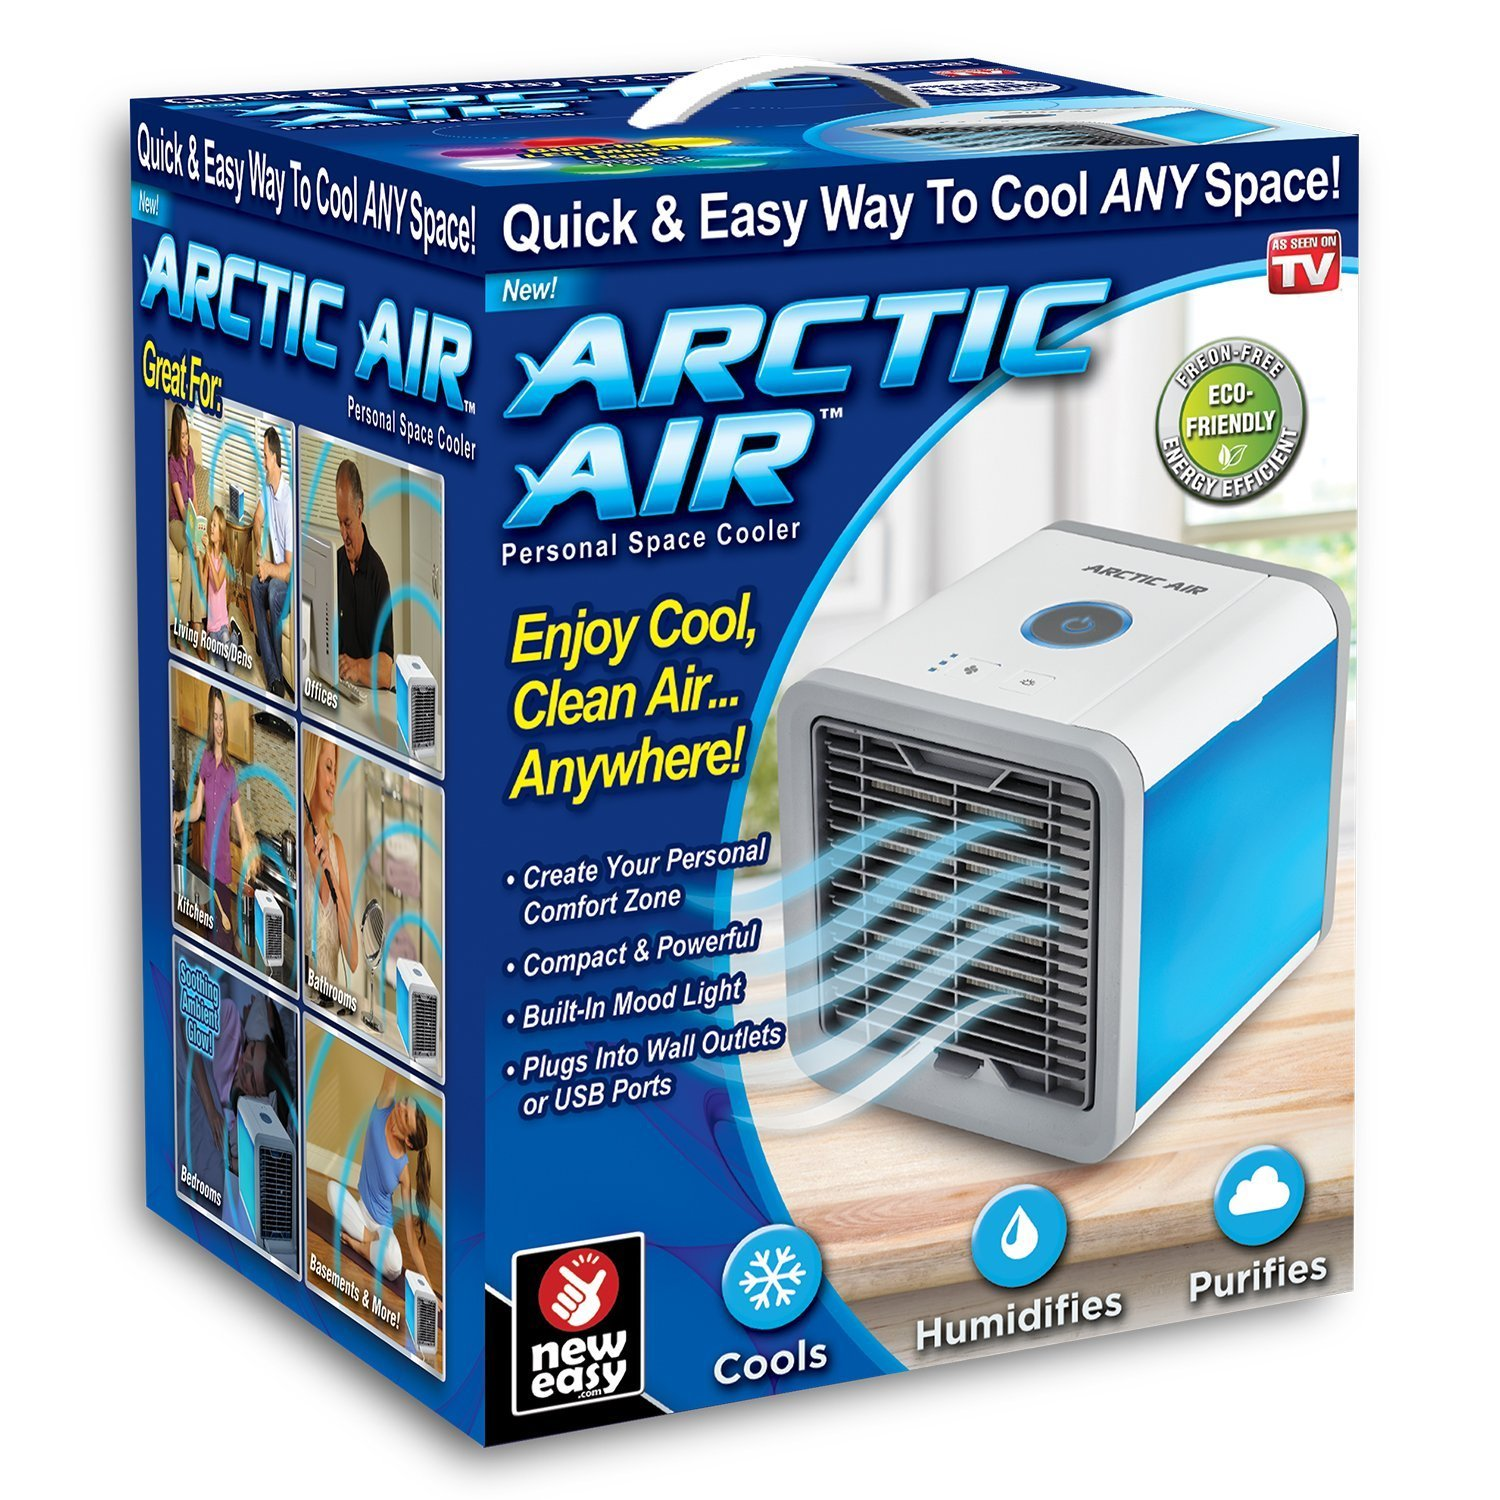 Arctic AIR Personal Space Cooler | Portable Mini Air Conditioner | Cools Humidifies and Purifies Air | Built in LED Lights | USB Port | As Seen On TV